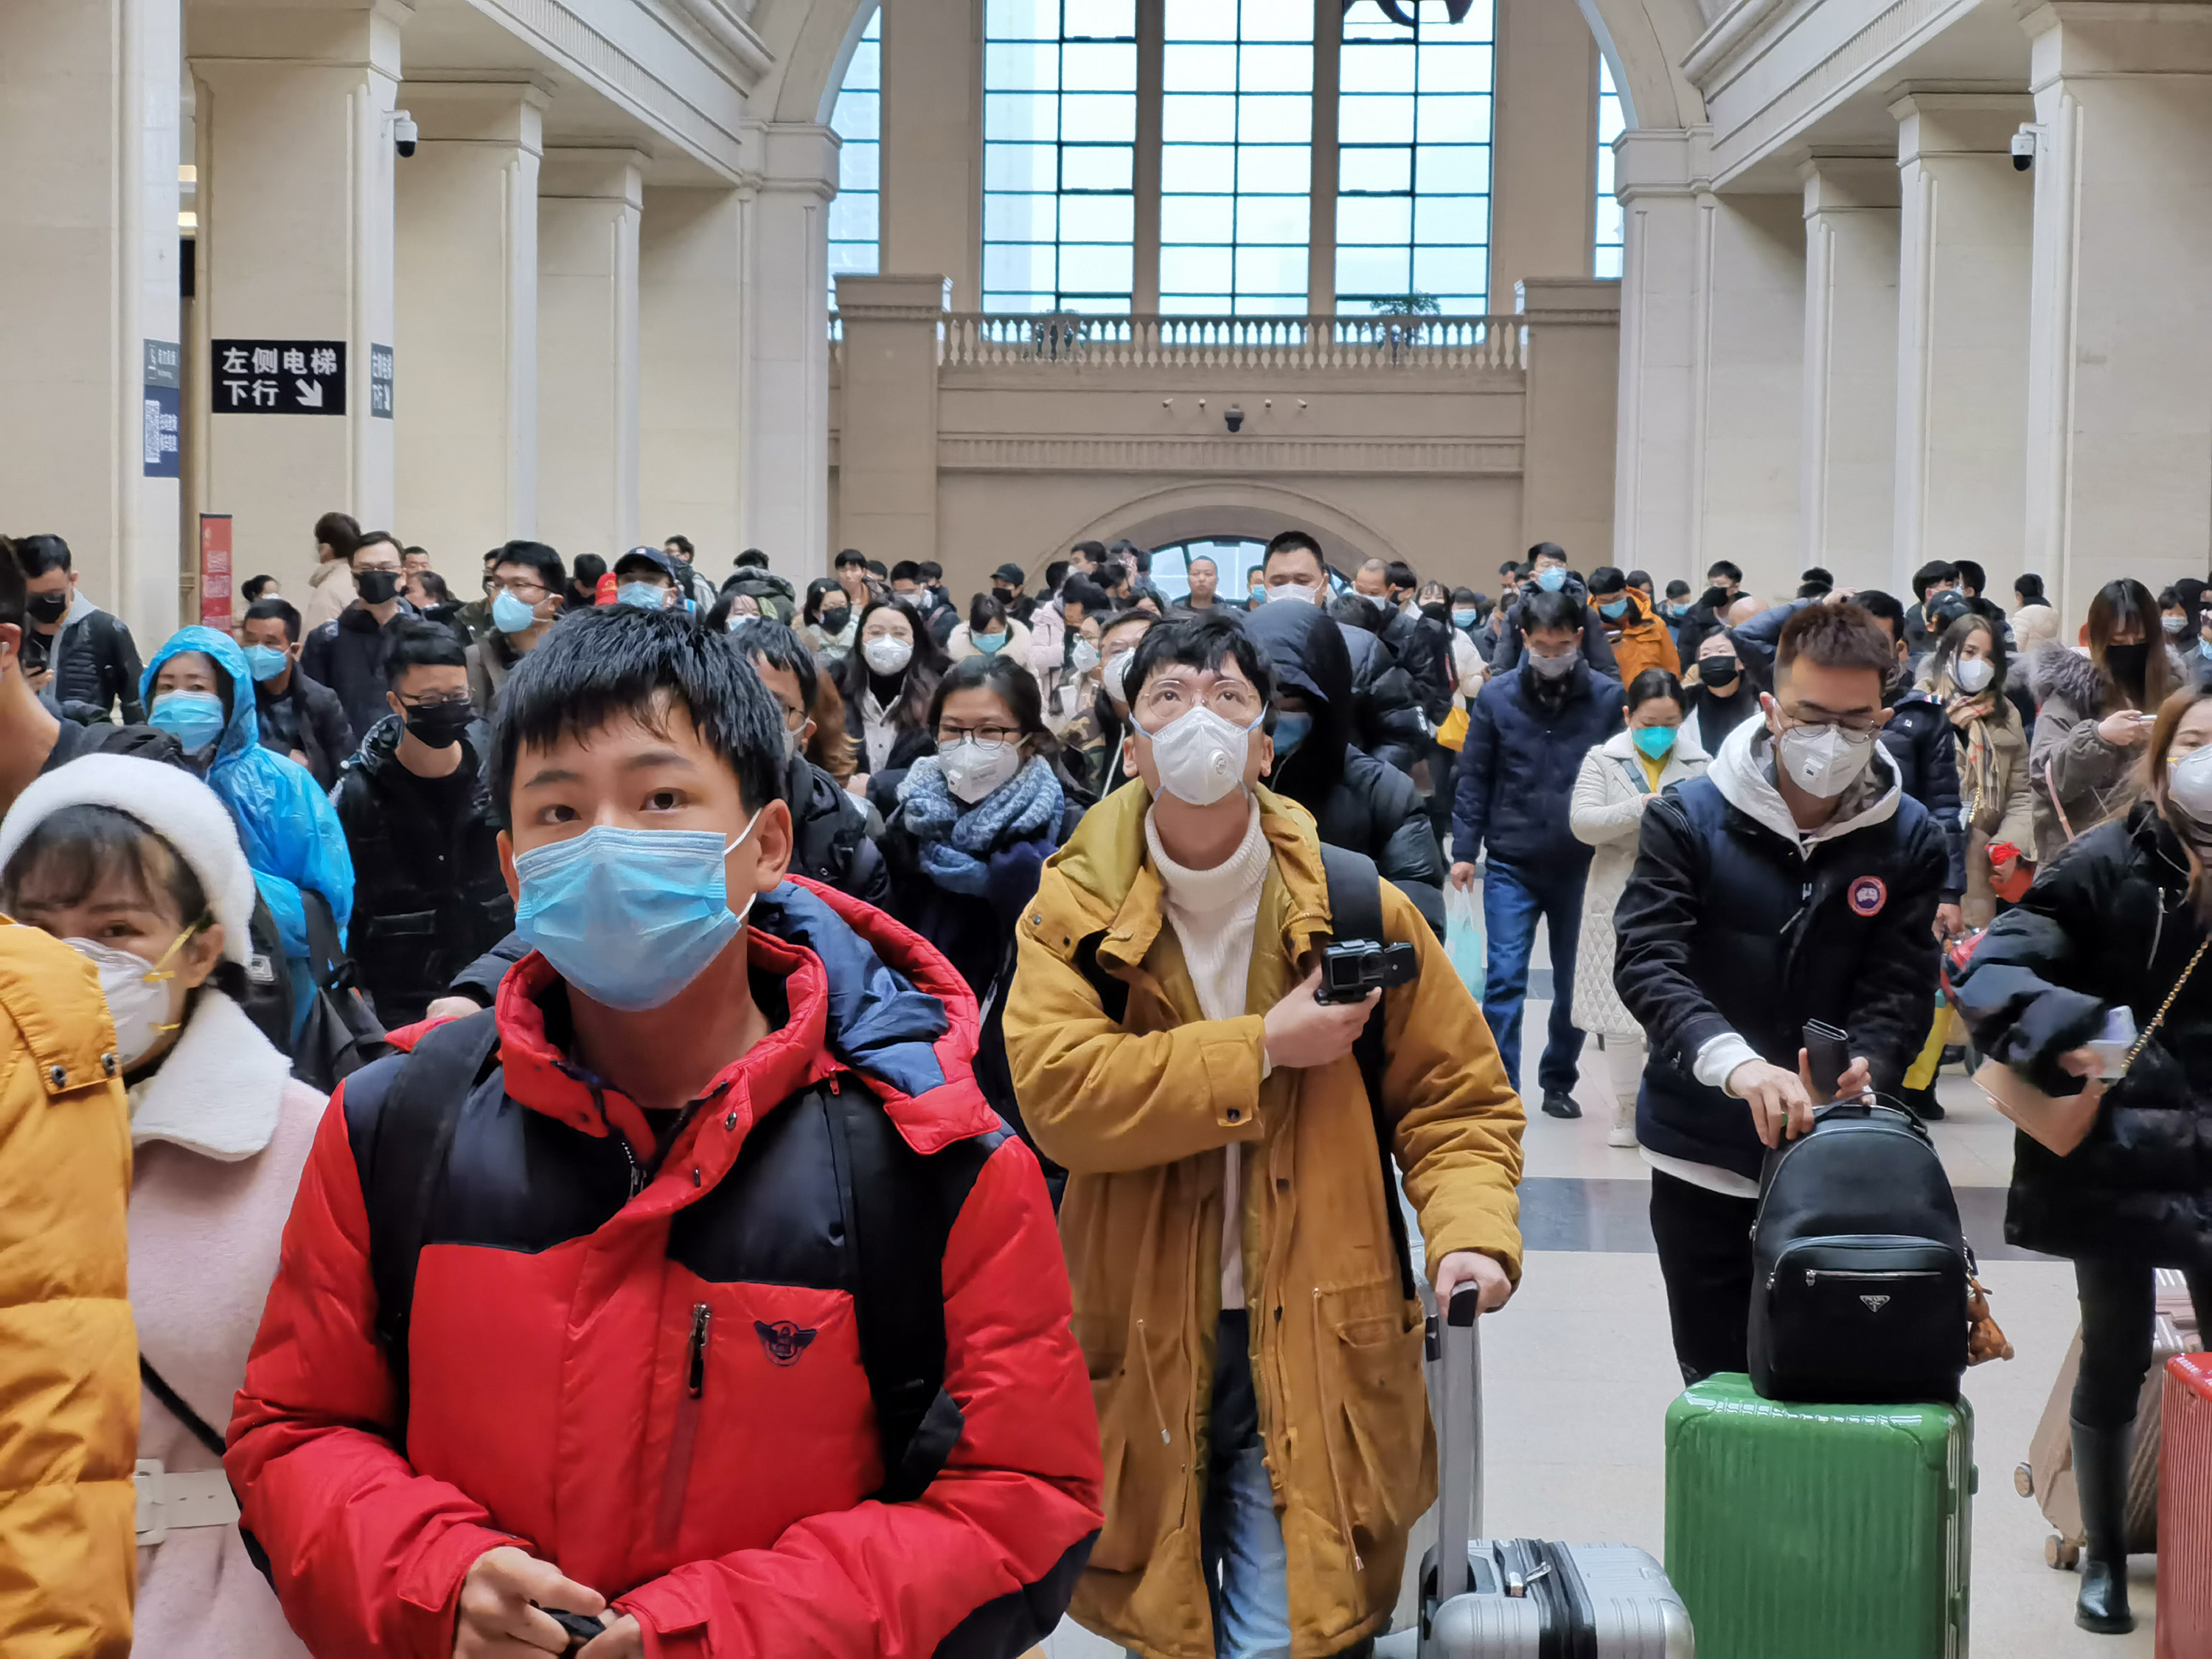 WUHAN, CHINA - JANUARY 22: People wear face masks as they wait at Hankou Railway Station on January 22, 2020 in Wuhan, China. A new infectious coronavirus known as